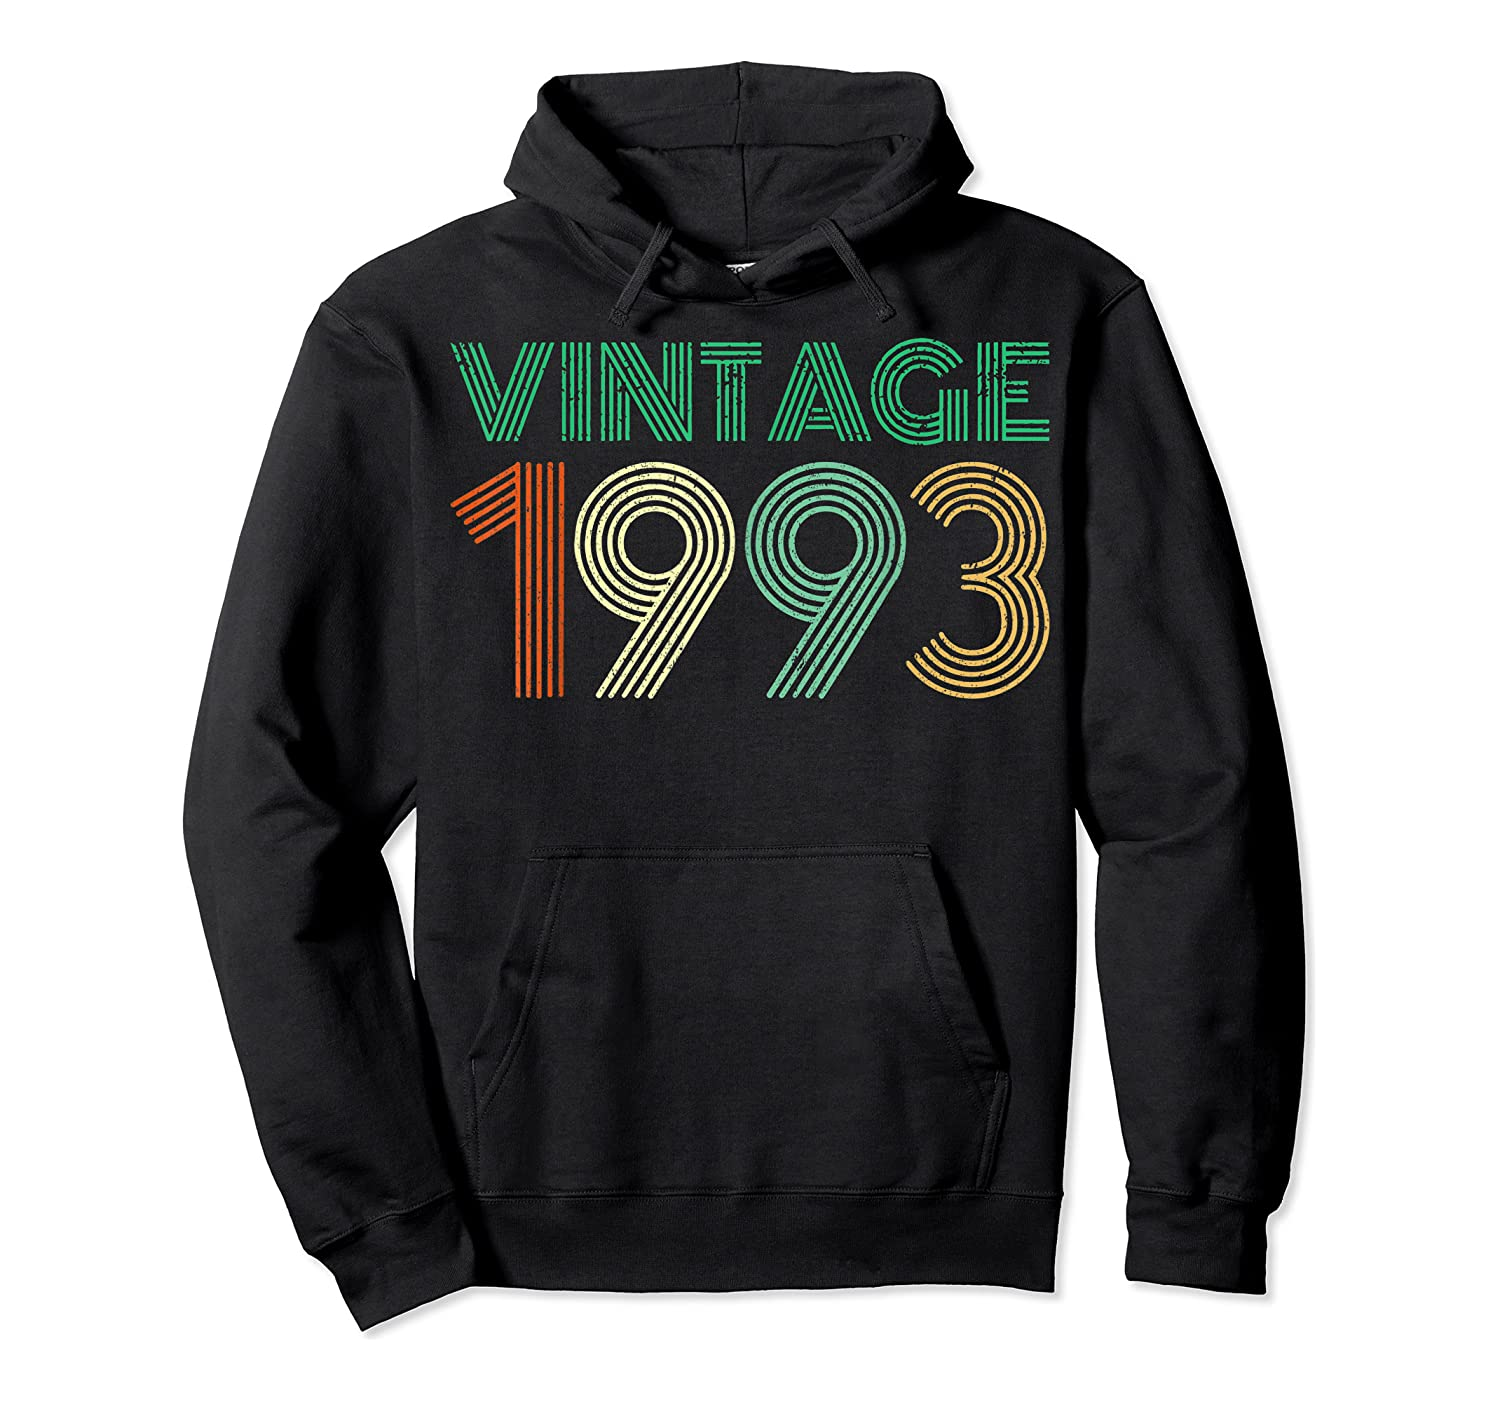 26th Birthday Gift Idea Vintage 1993 T-shirt Distressed Unisex Pullover Hoodie